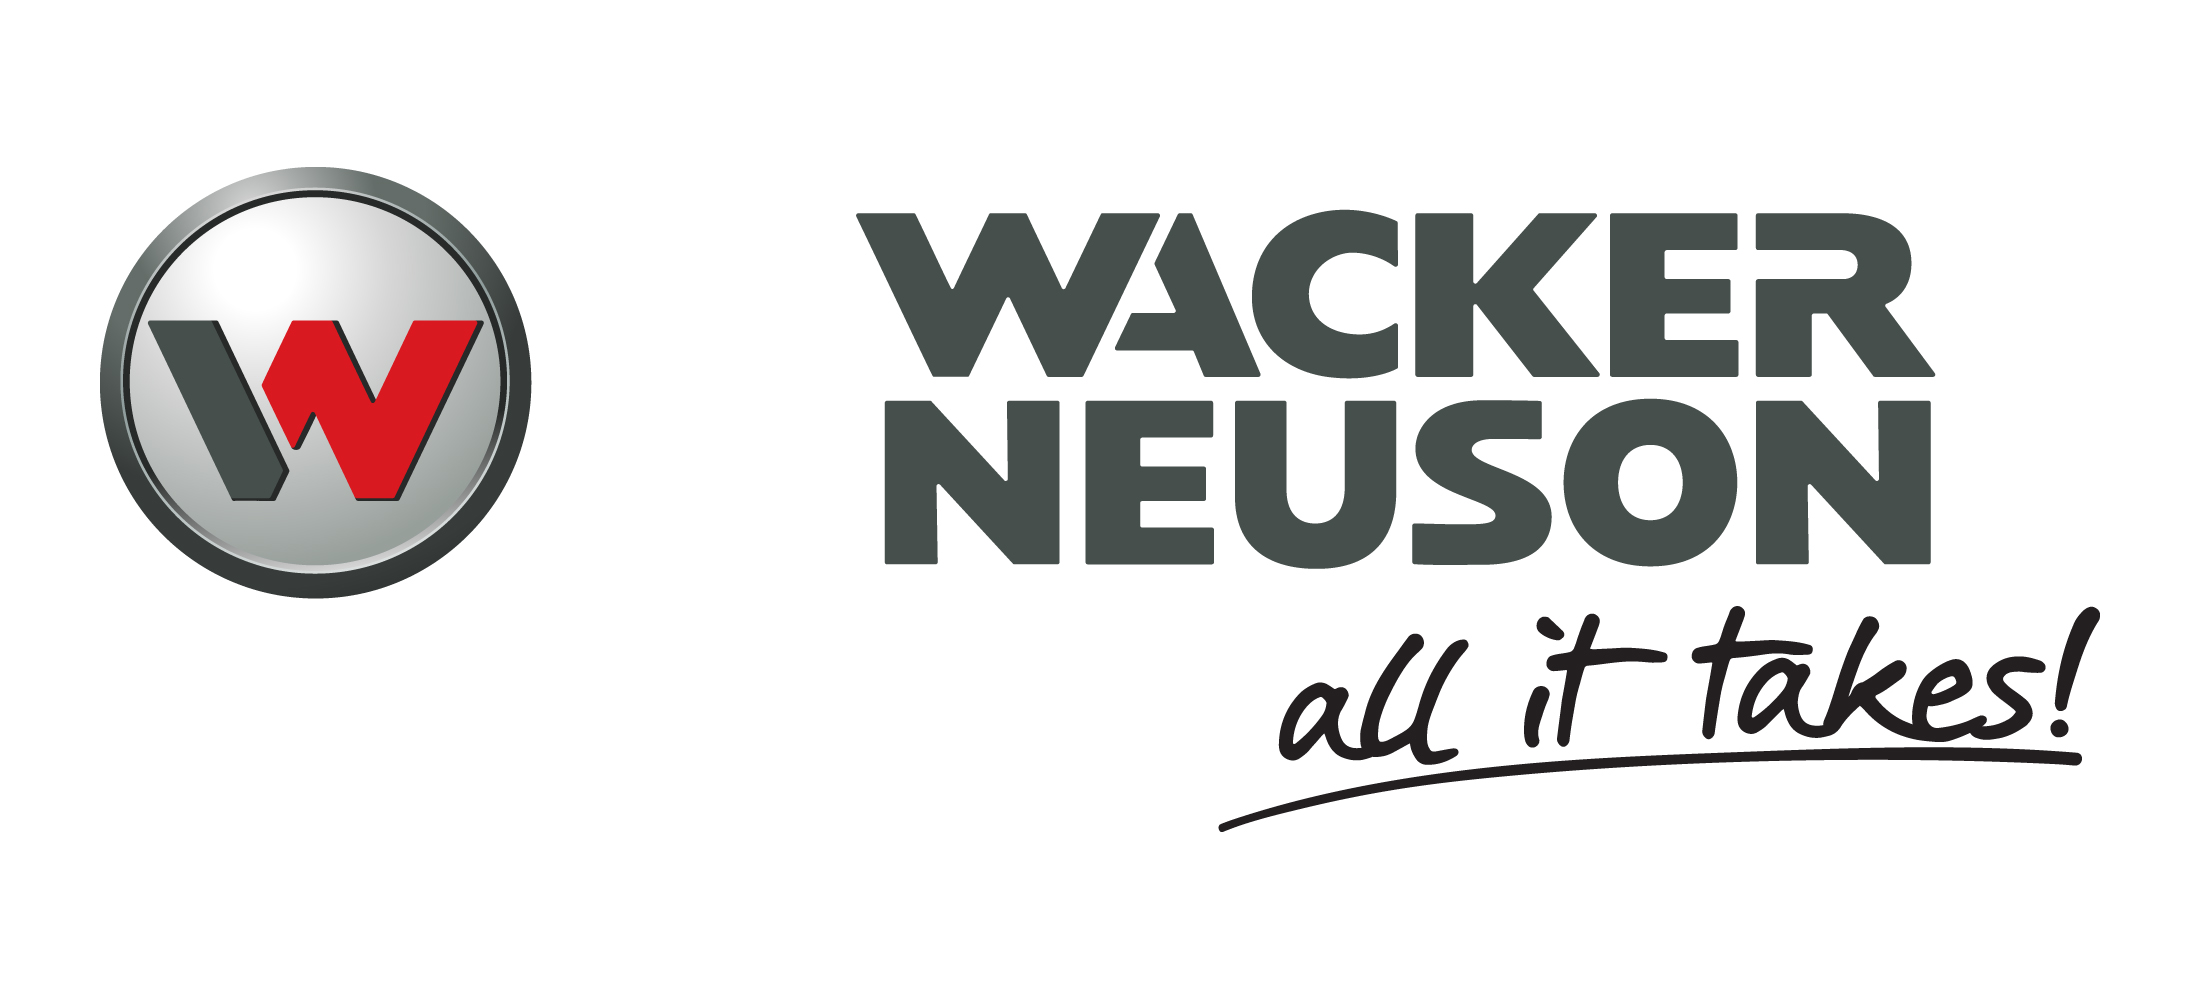 Wacker Neuson SE Logistikzentrum